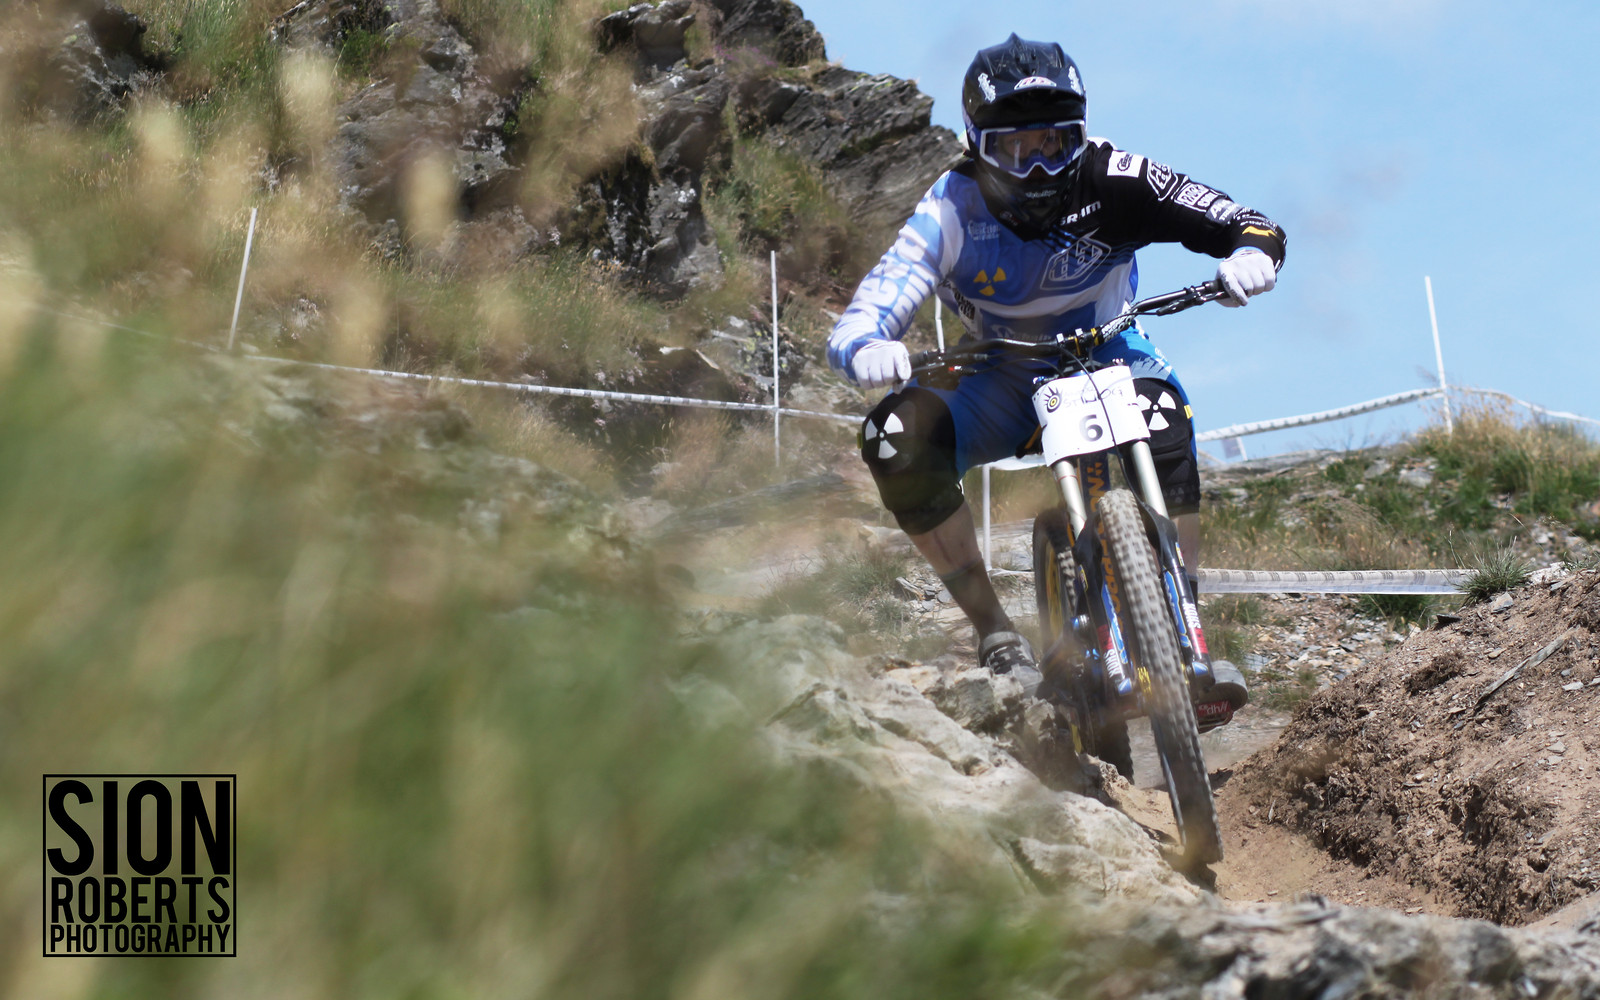 Matt Simmonds - sionr644 - Mountain Biking Pictures - Vital MTB